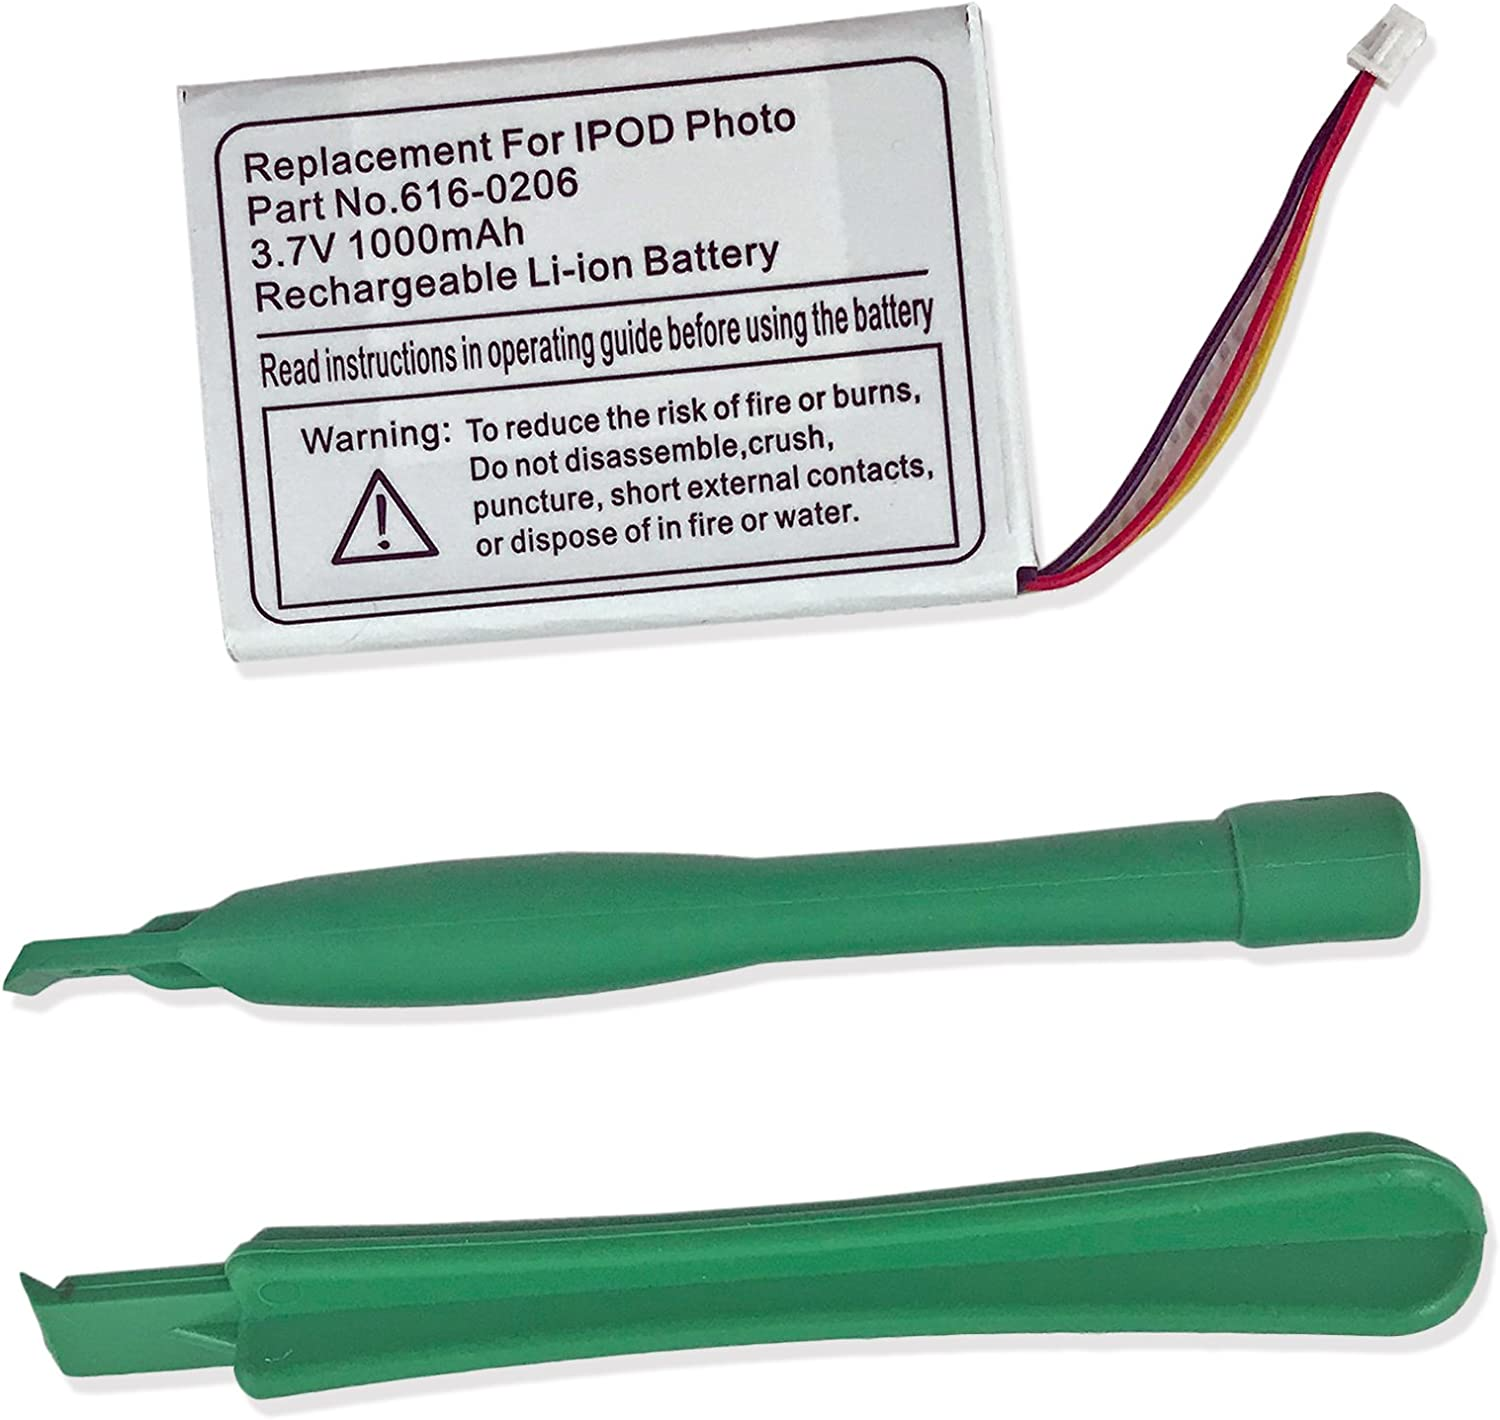 CBK 616-0206 Replacement Li-ion Battery for Apple iPod Classic 4th Photo 30GB 40GB 60GB M9585 M9586 M9829 M9830/Color with Tools